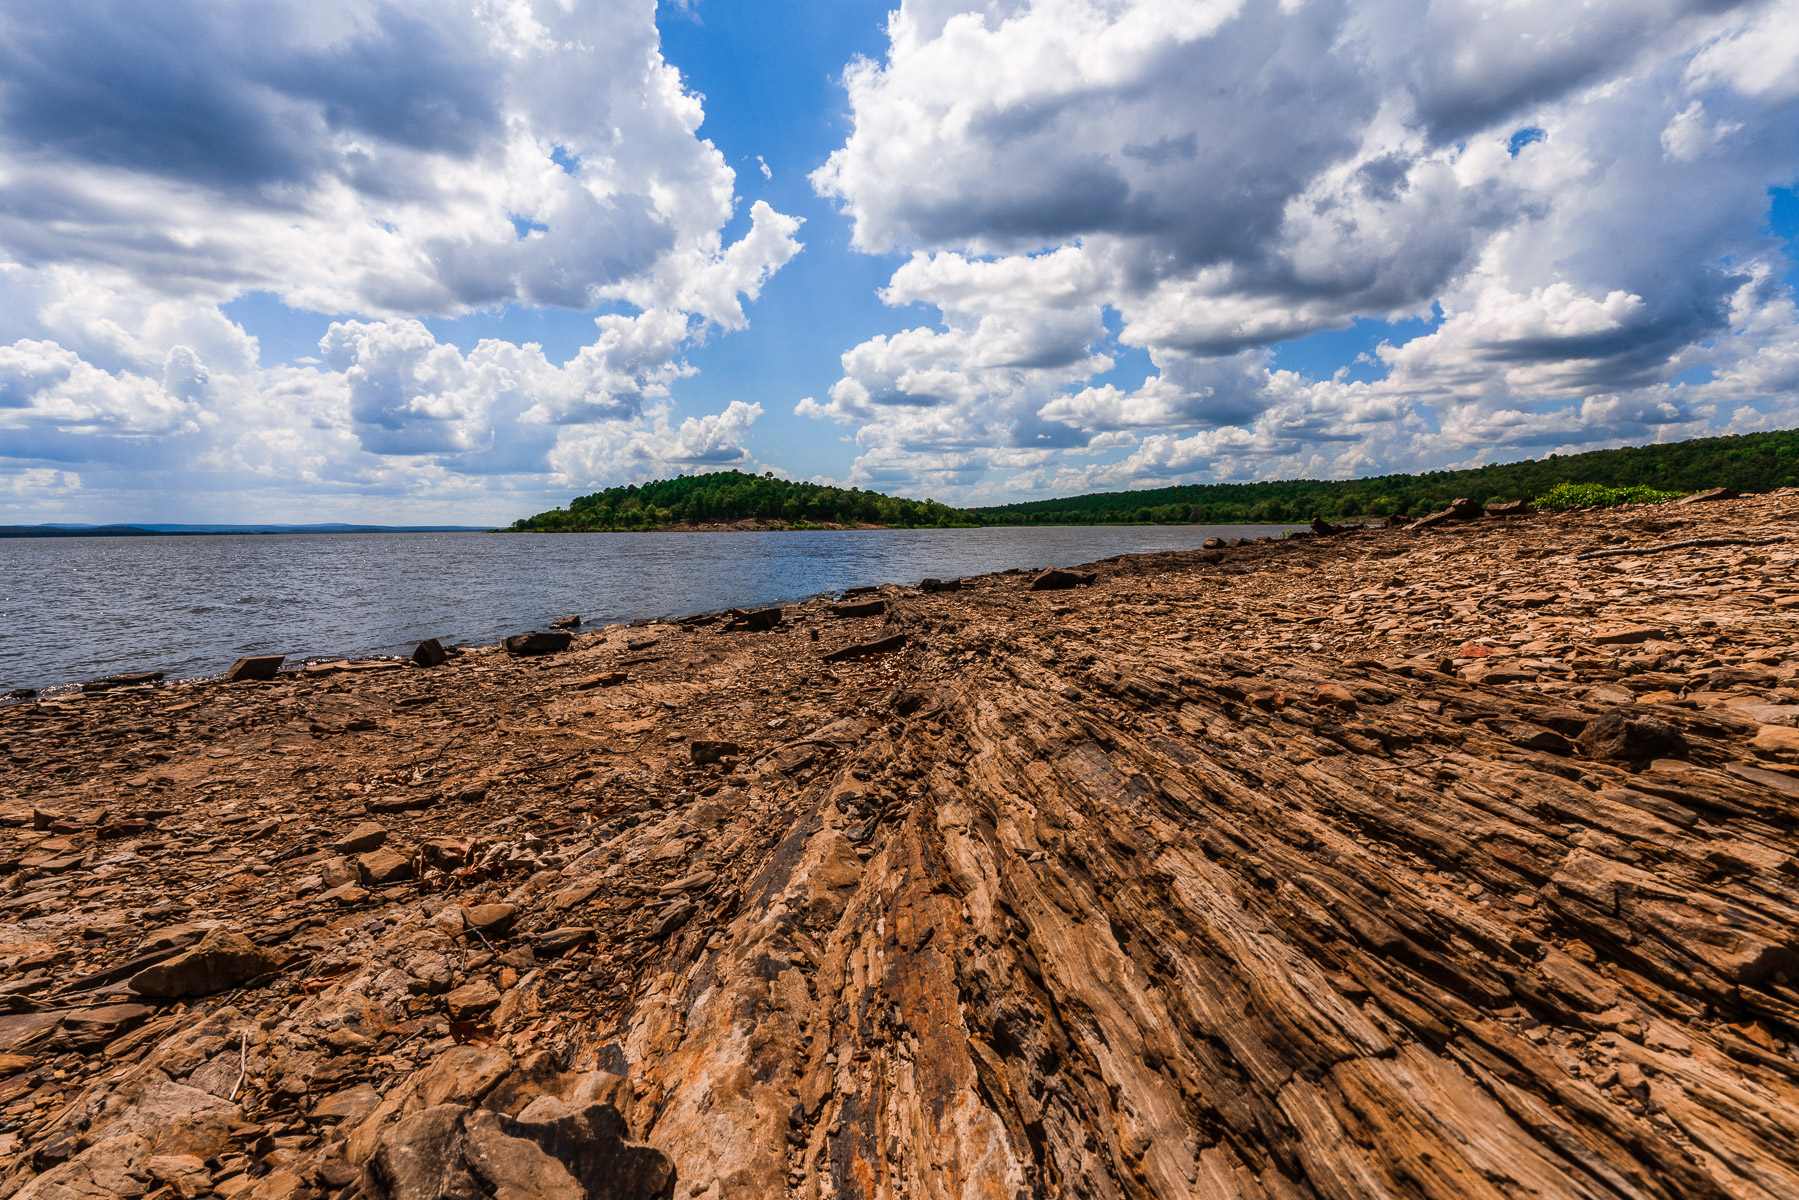 The rugged landscape of Oklahoma's Lake Wister State Park.